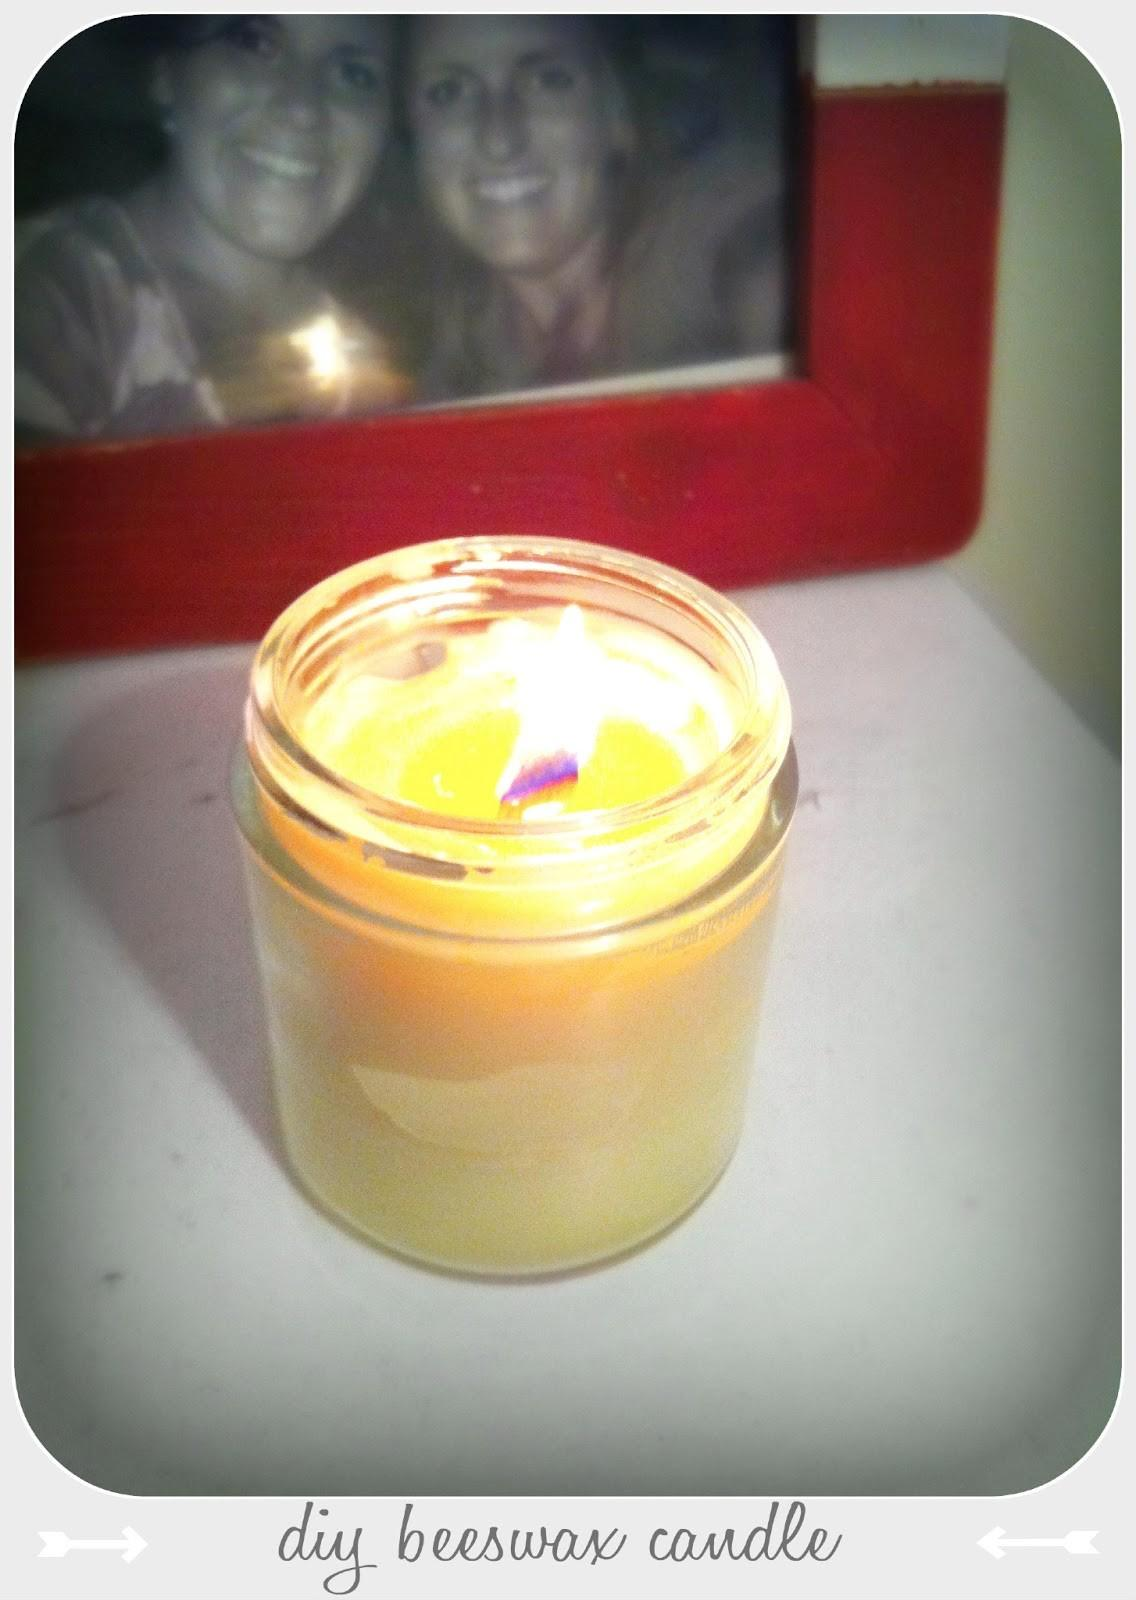 Past Tense Draw Saturday Diy Wood Wick Beeswax Candles